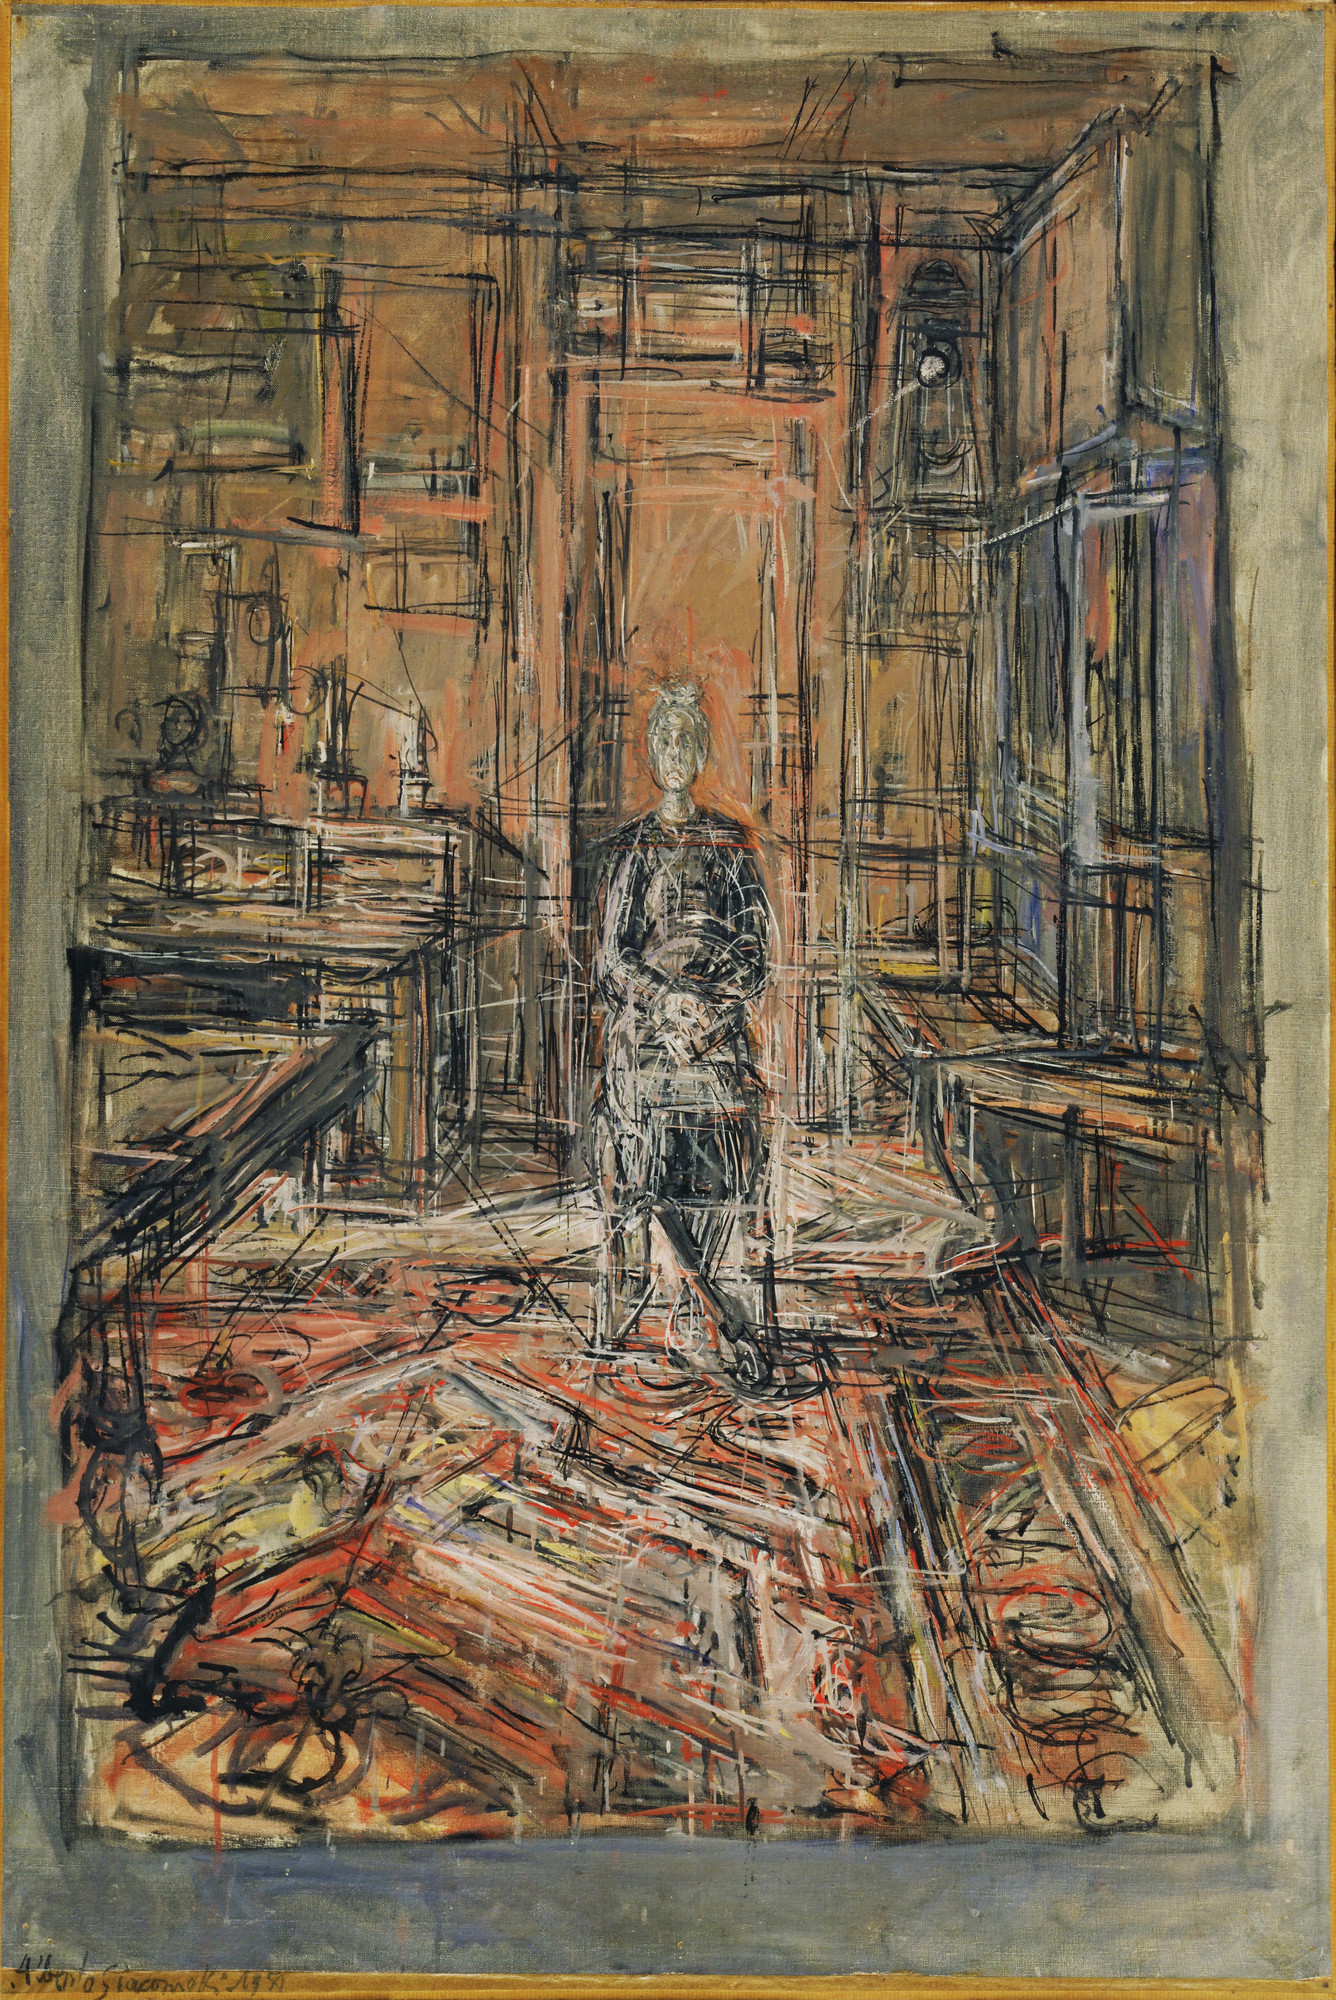 Alberto Giacometti. The Artist's Mother. 1950